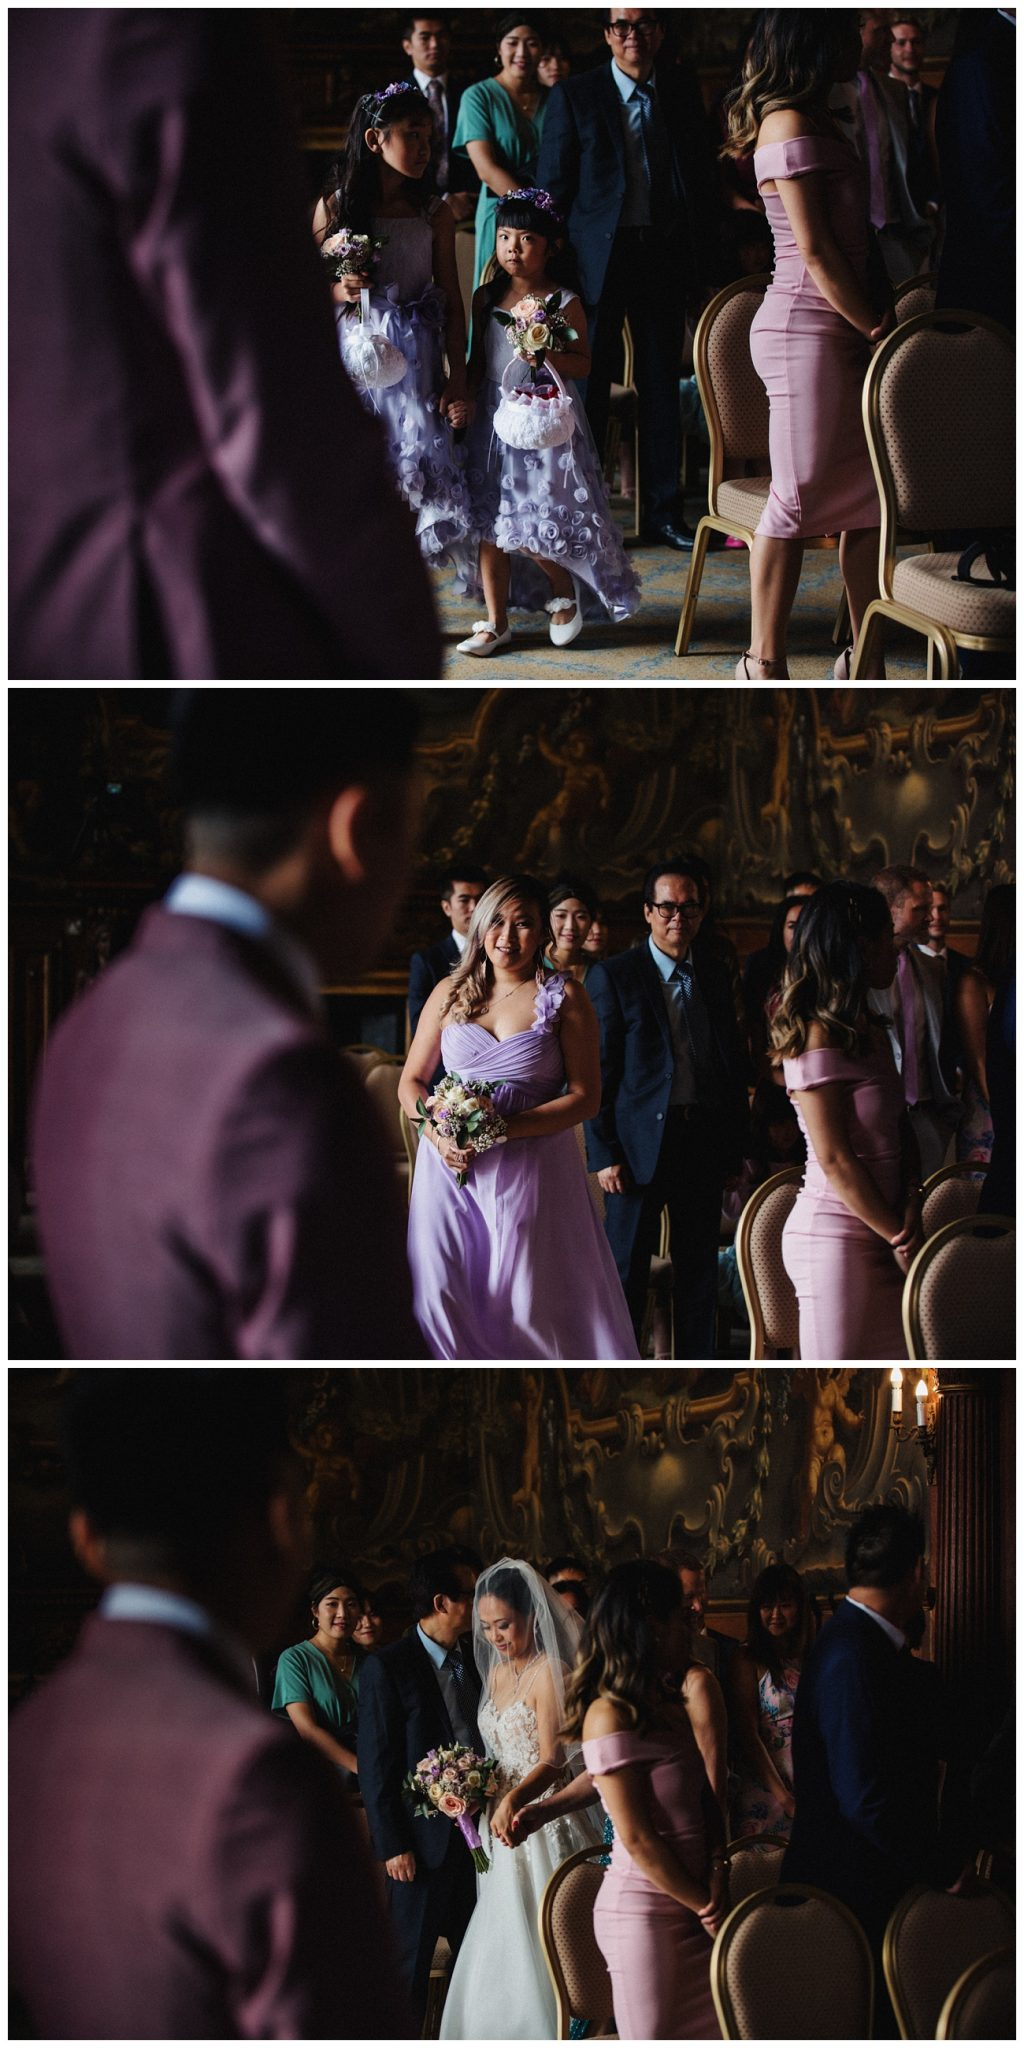 The bridal party make their entrance into the ceremony room and down the aisle.